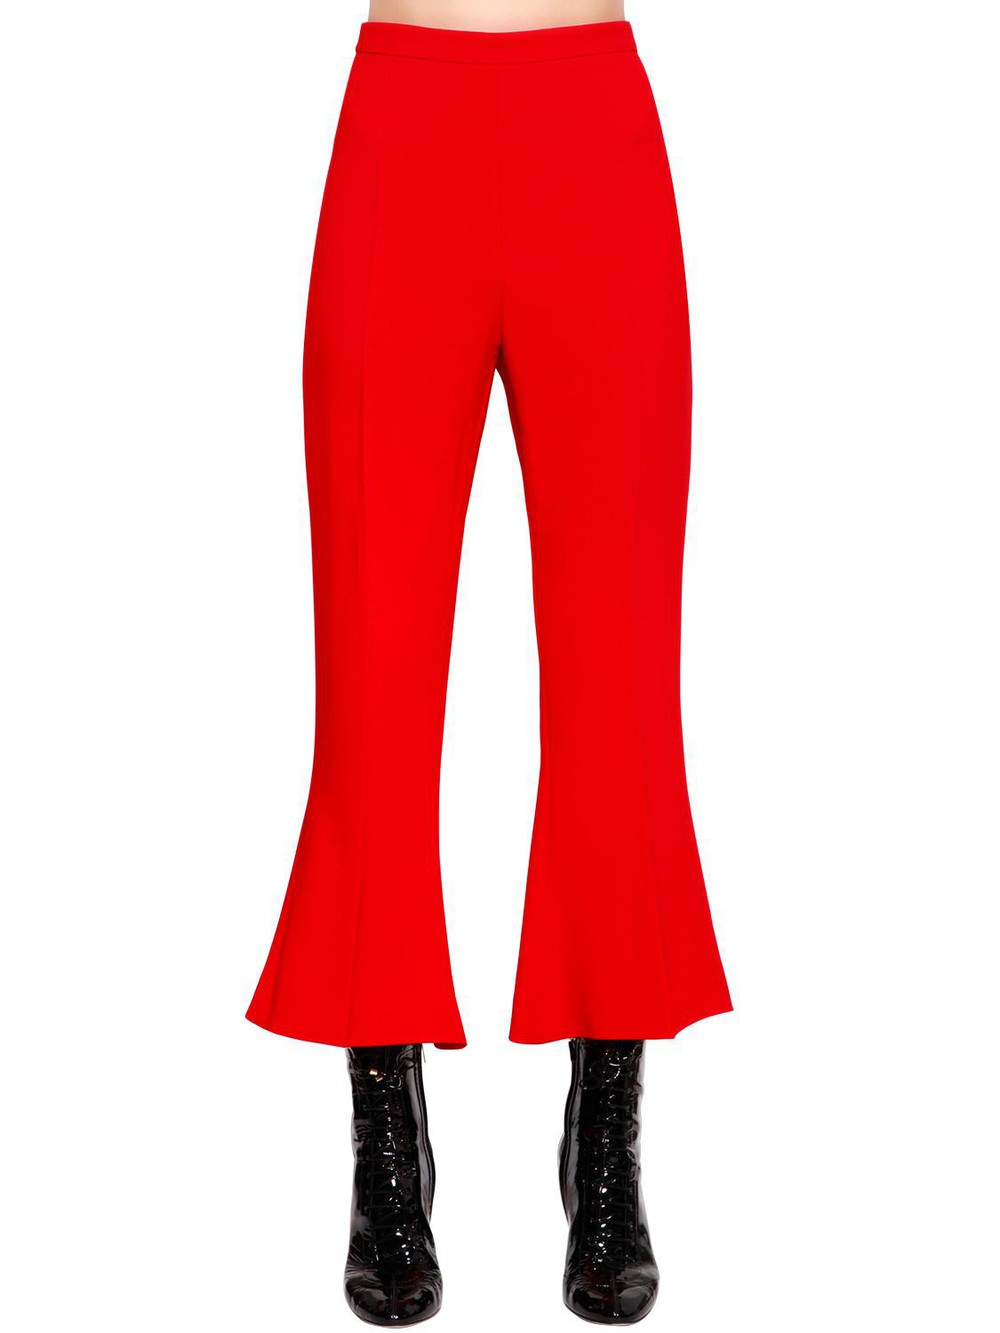 ANTONIO BERARDI Flared & Cropped Cady Pants in red